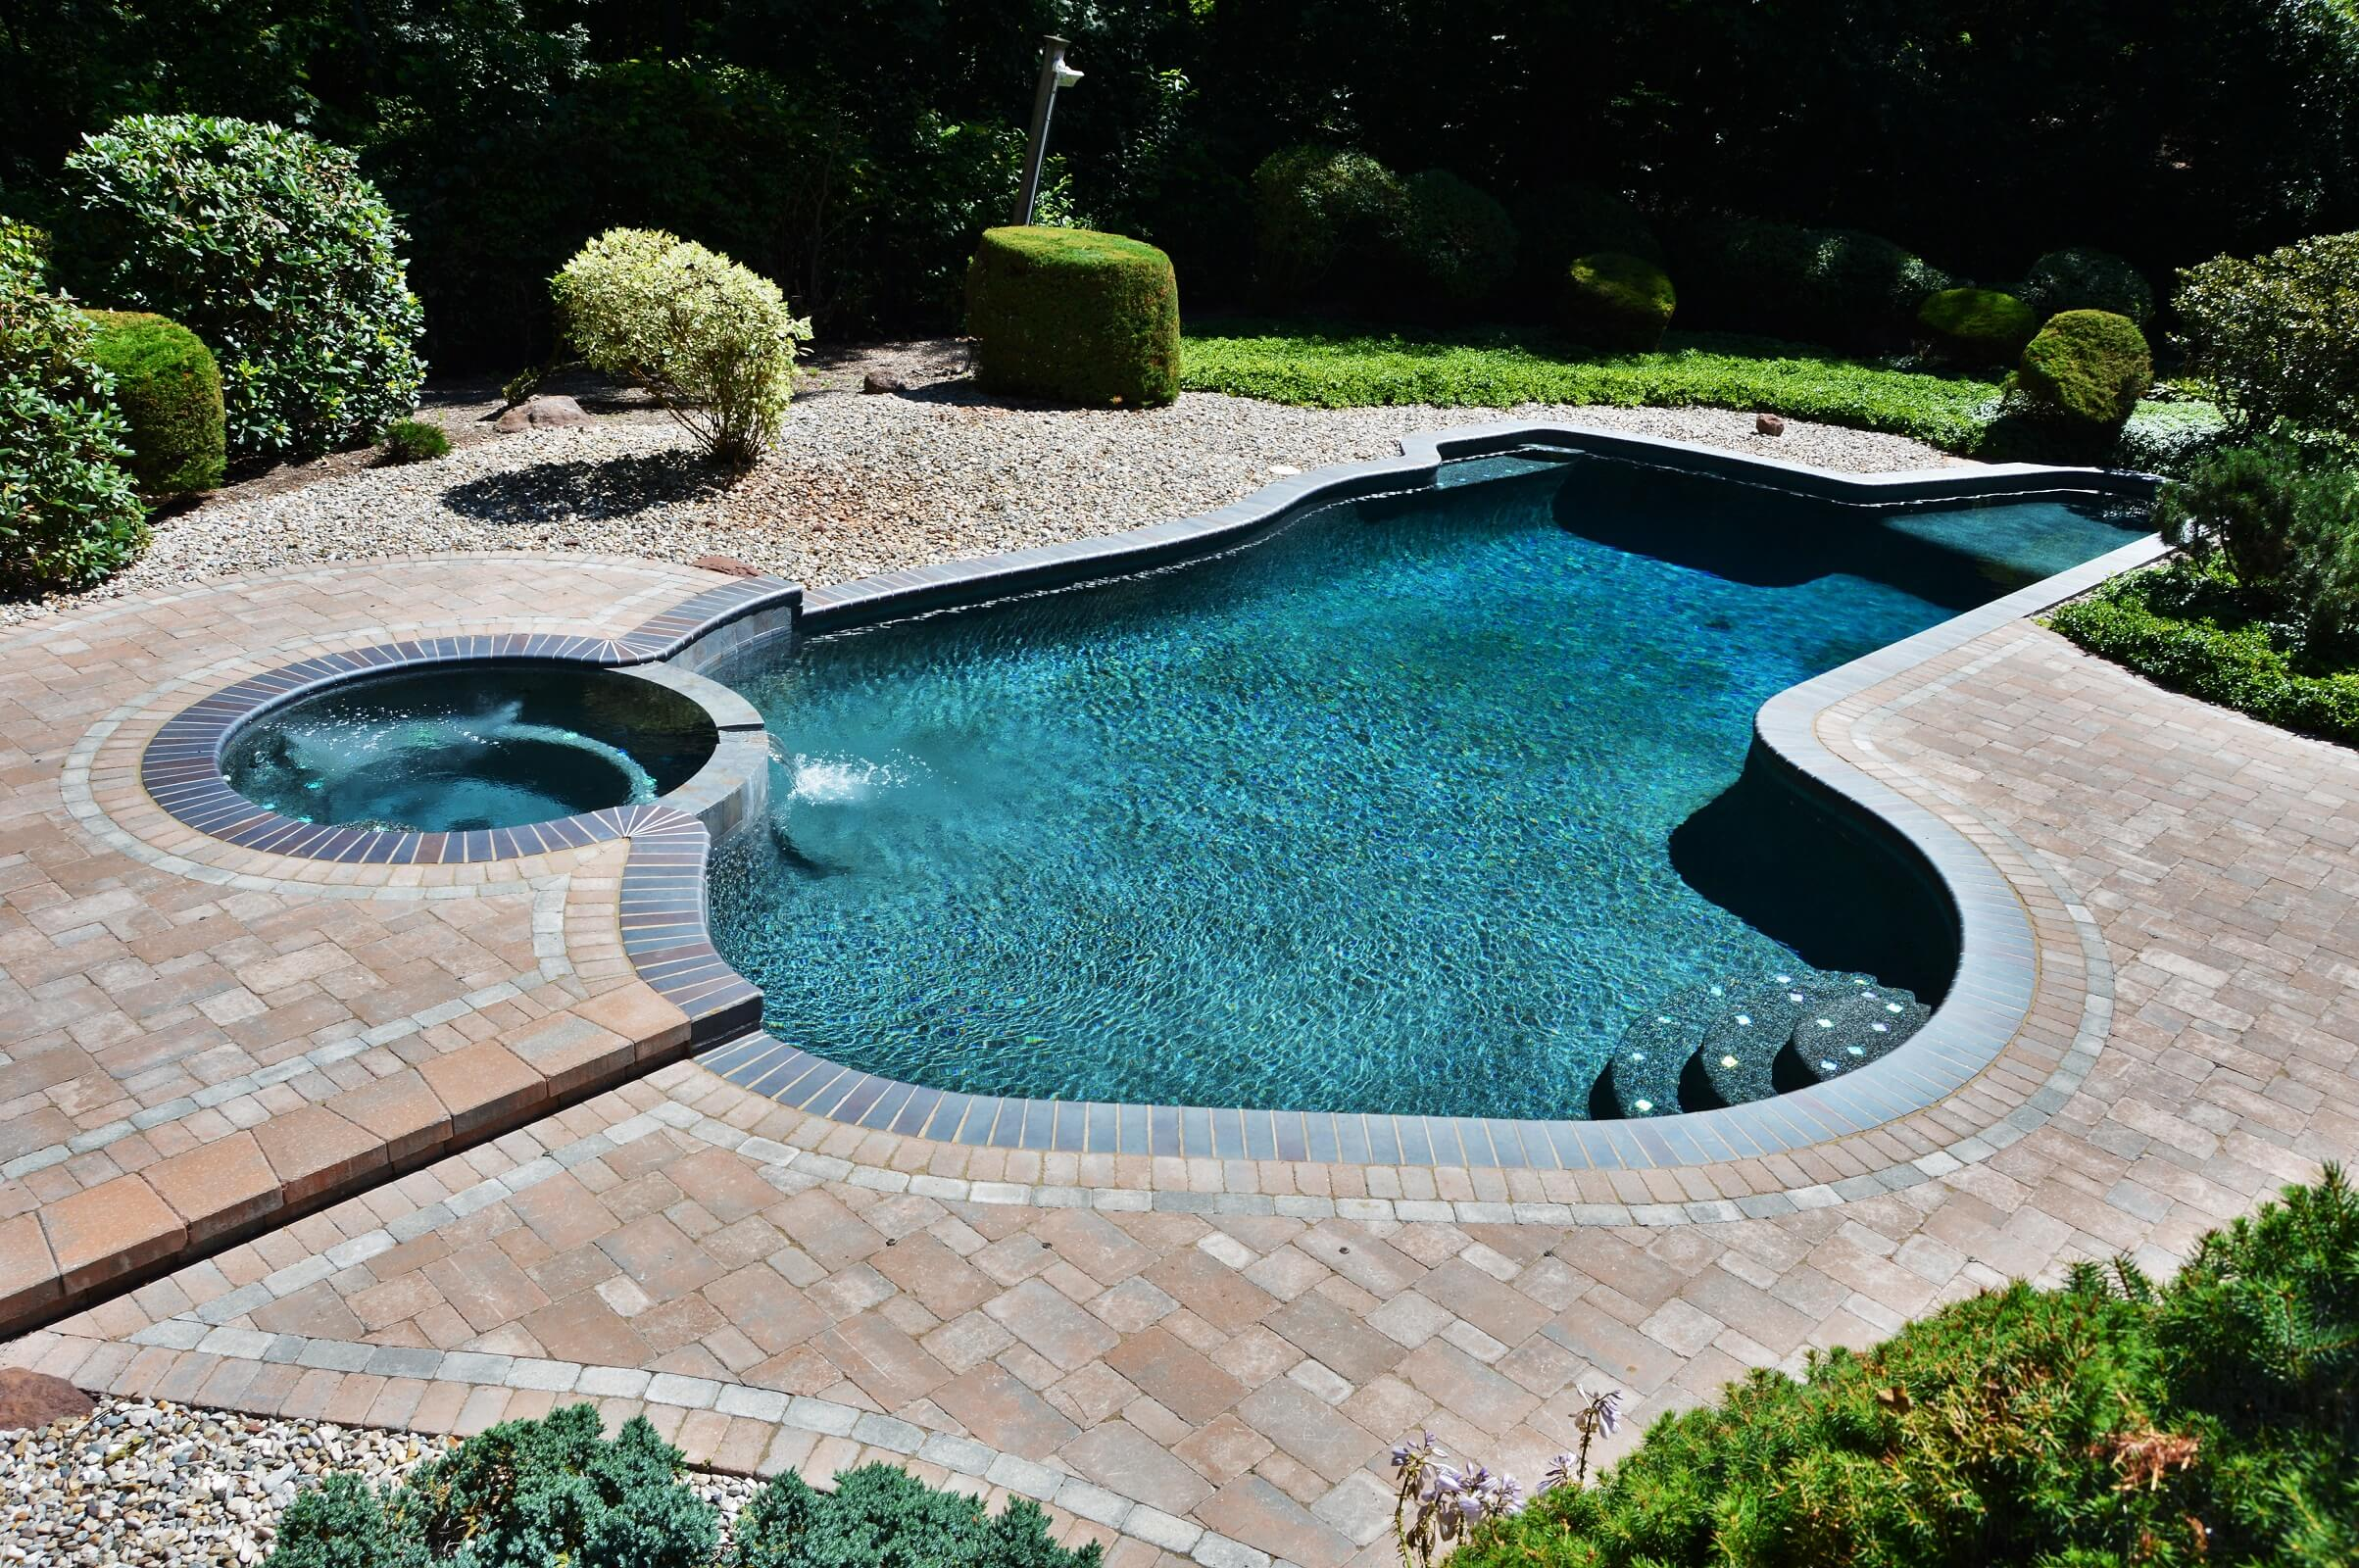 How Long Does a Gunite Pool Last?